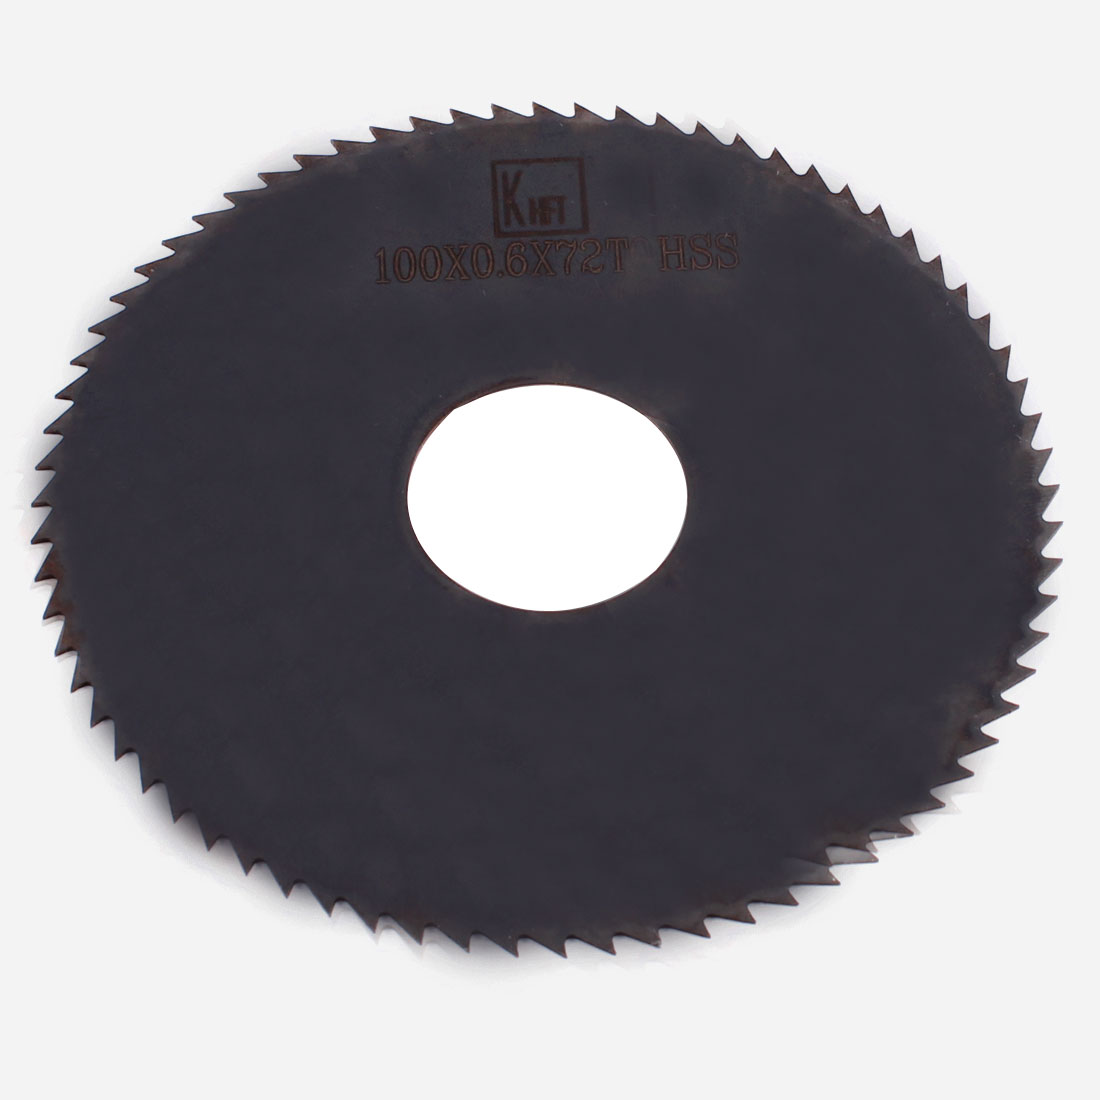 Black HSS 72 Teeth 100mm x 0.6mm x 27mm Slitting Saw Repair Parts